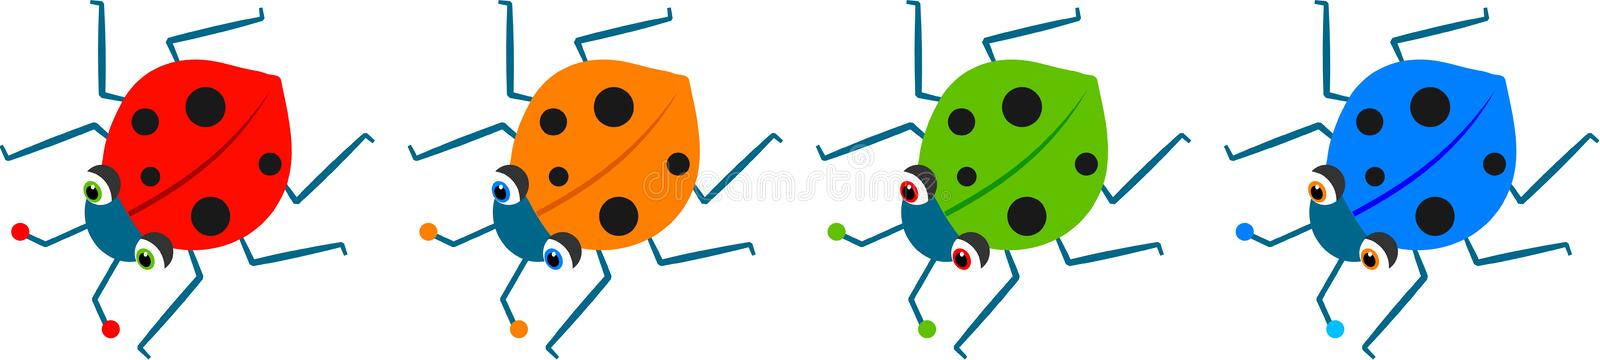 Coccinelles illustration libre de droits